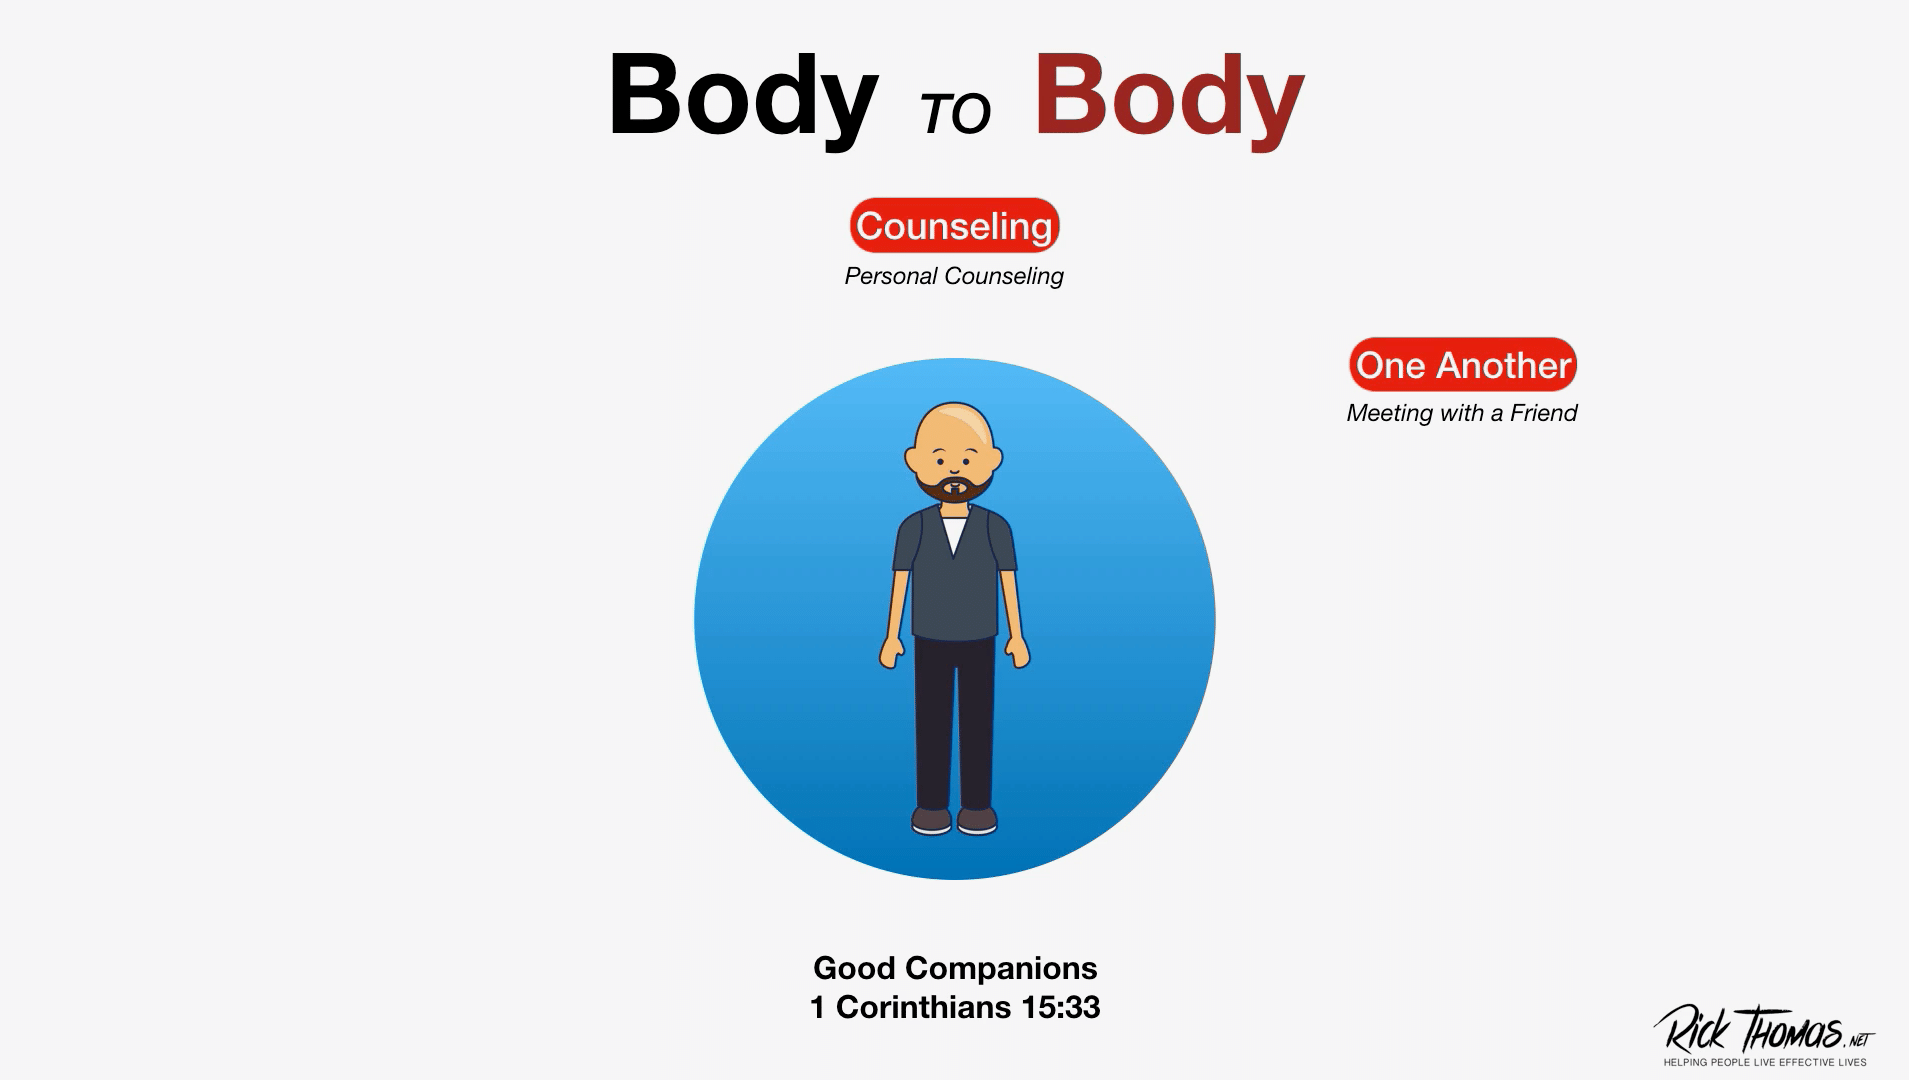 Video Channel Body to Body